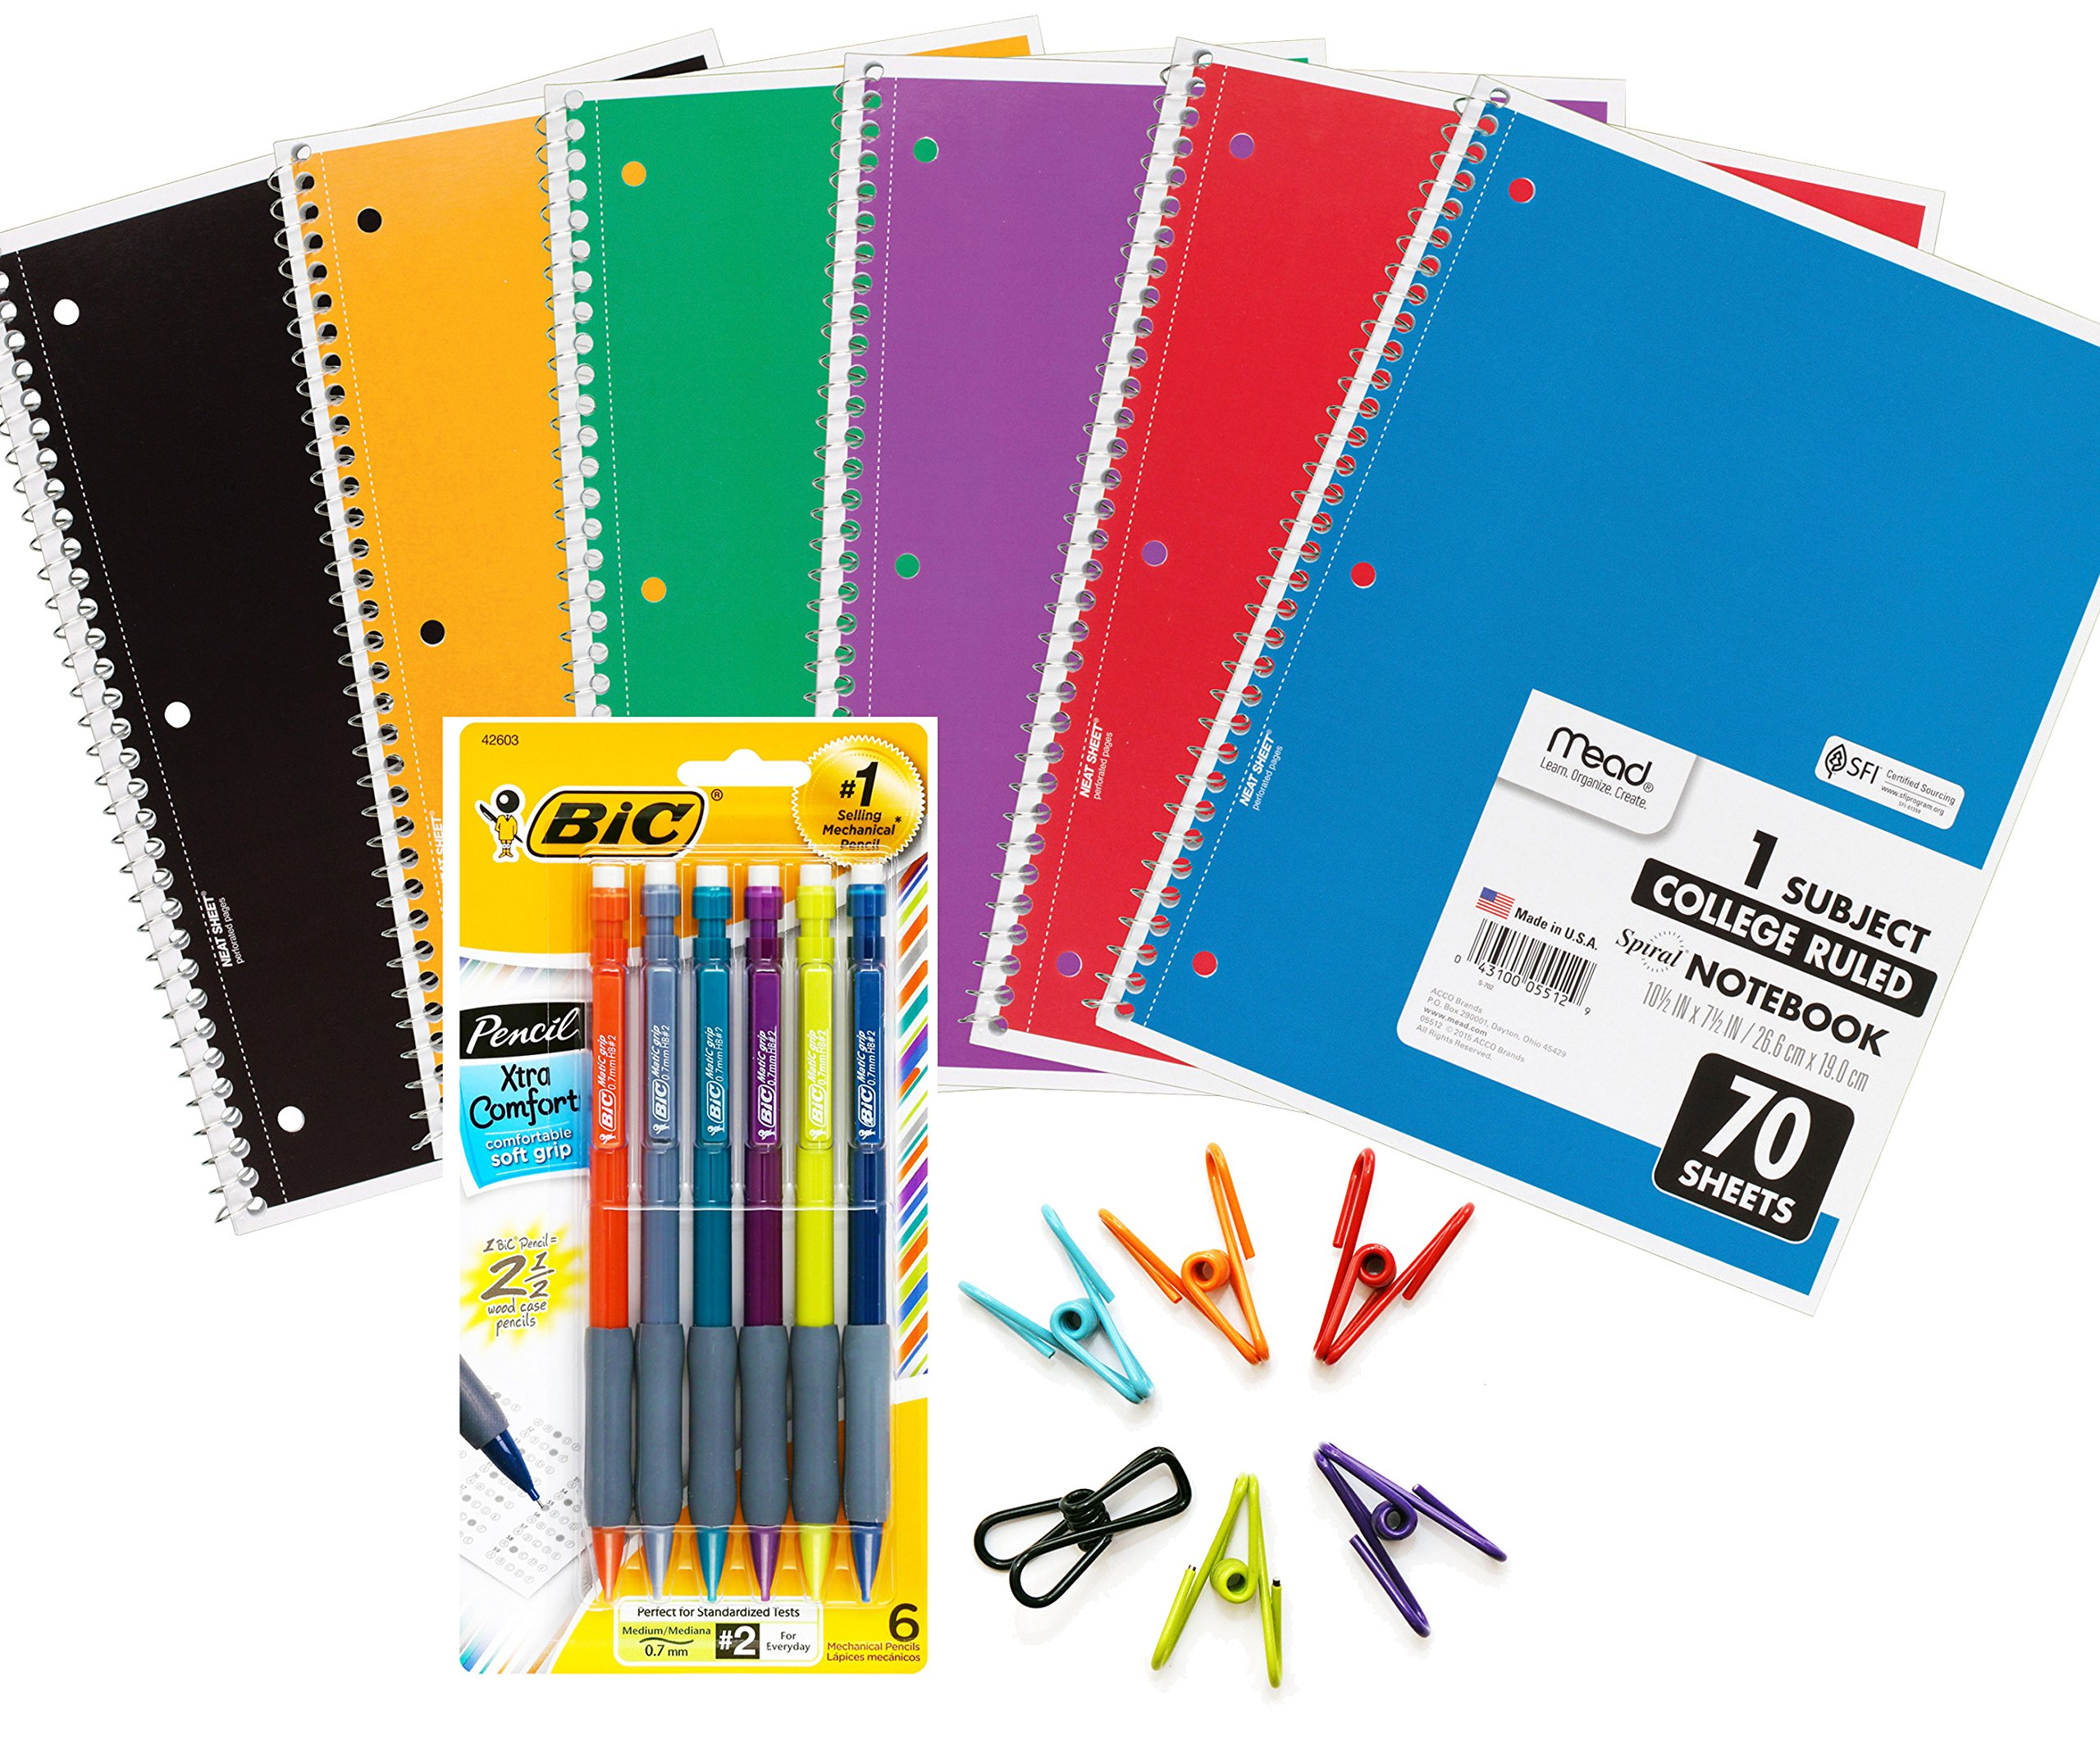 Mead Spiral One Subject College Ruled Color Notebooks Pack (6) Bundle with BIC Mechanical Pencil and Multi Purpose Clips for Back to School, Elementary, High School and College Supplies